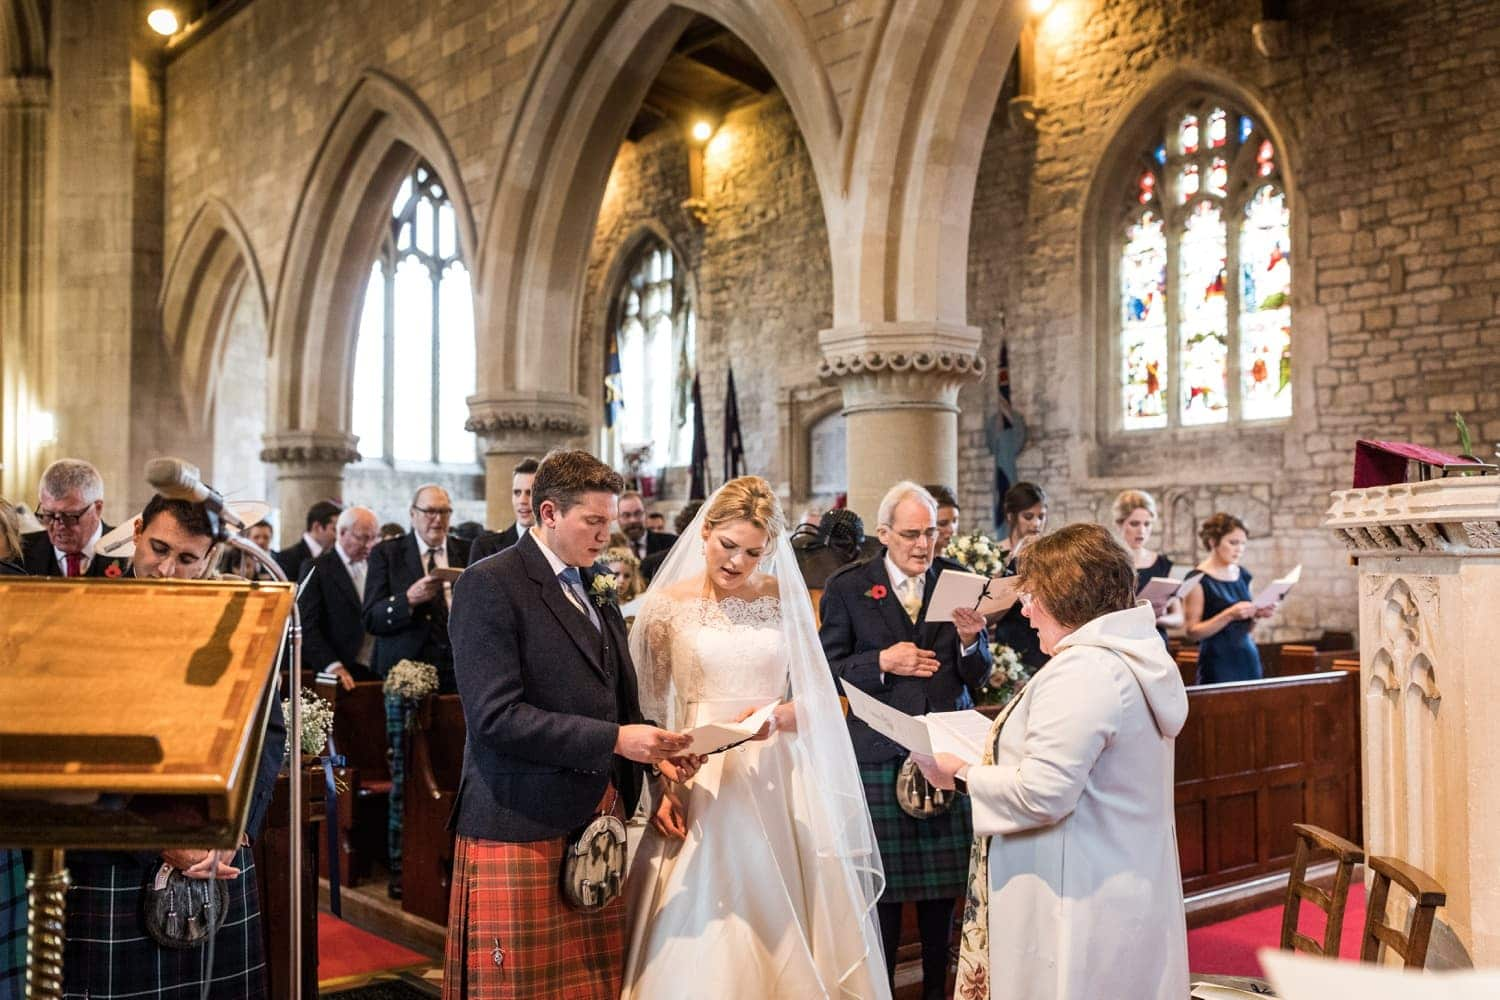 Wedding at Church of Saint John the Baptist, Colerne in the Cotswolds